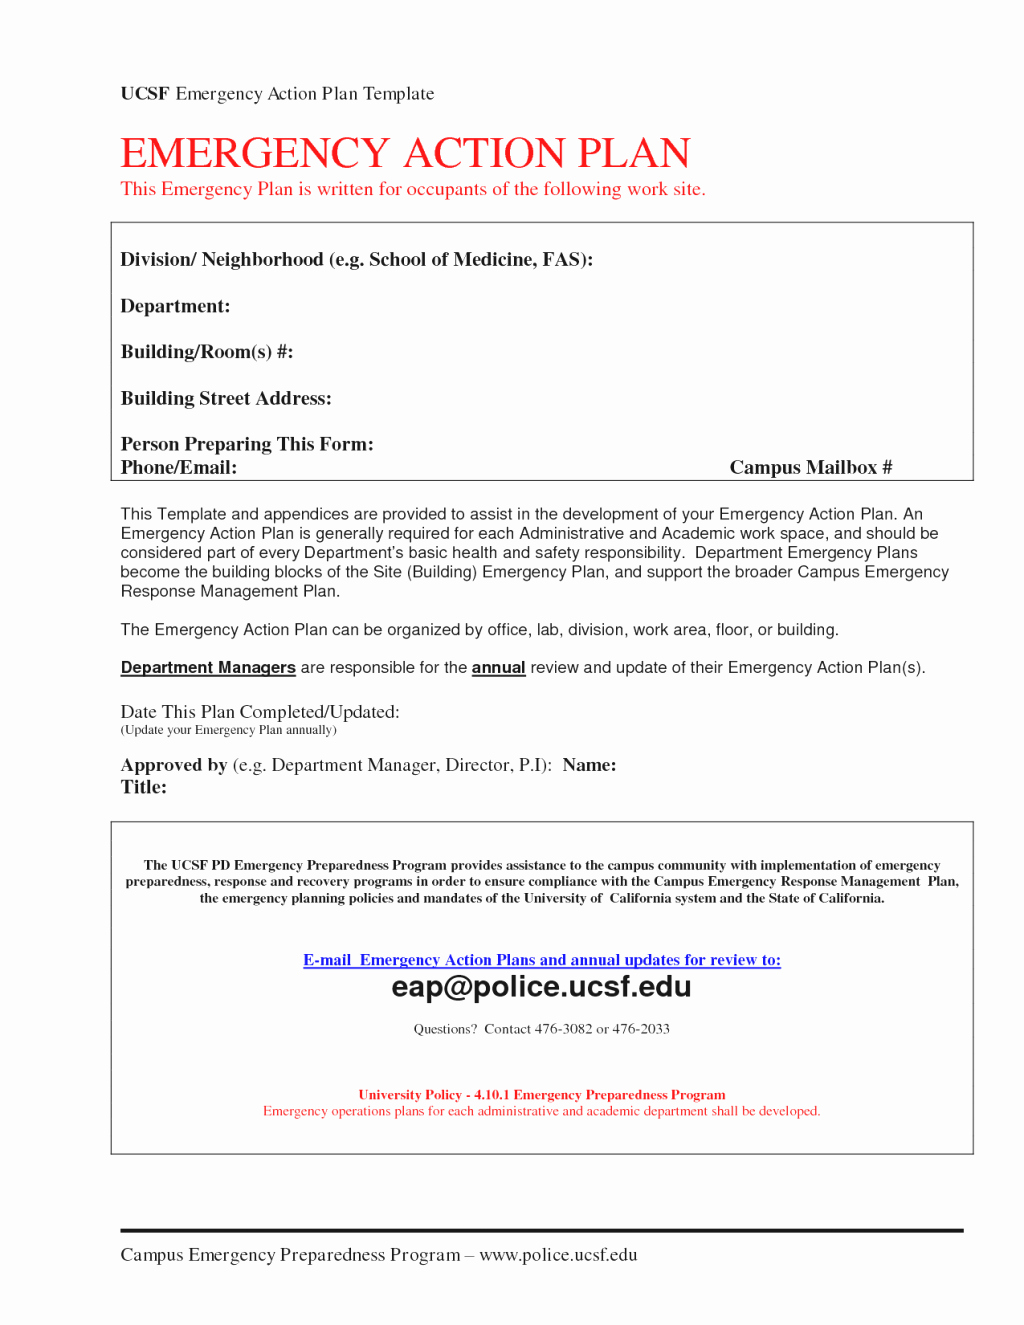 Emergency Action Plans Examples Elegant Emergency Action Plan Template Affordablecarecat Doc by